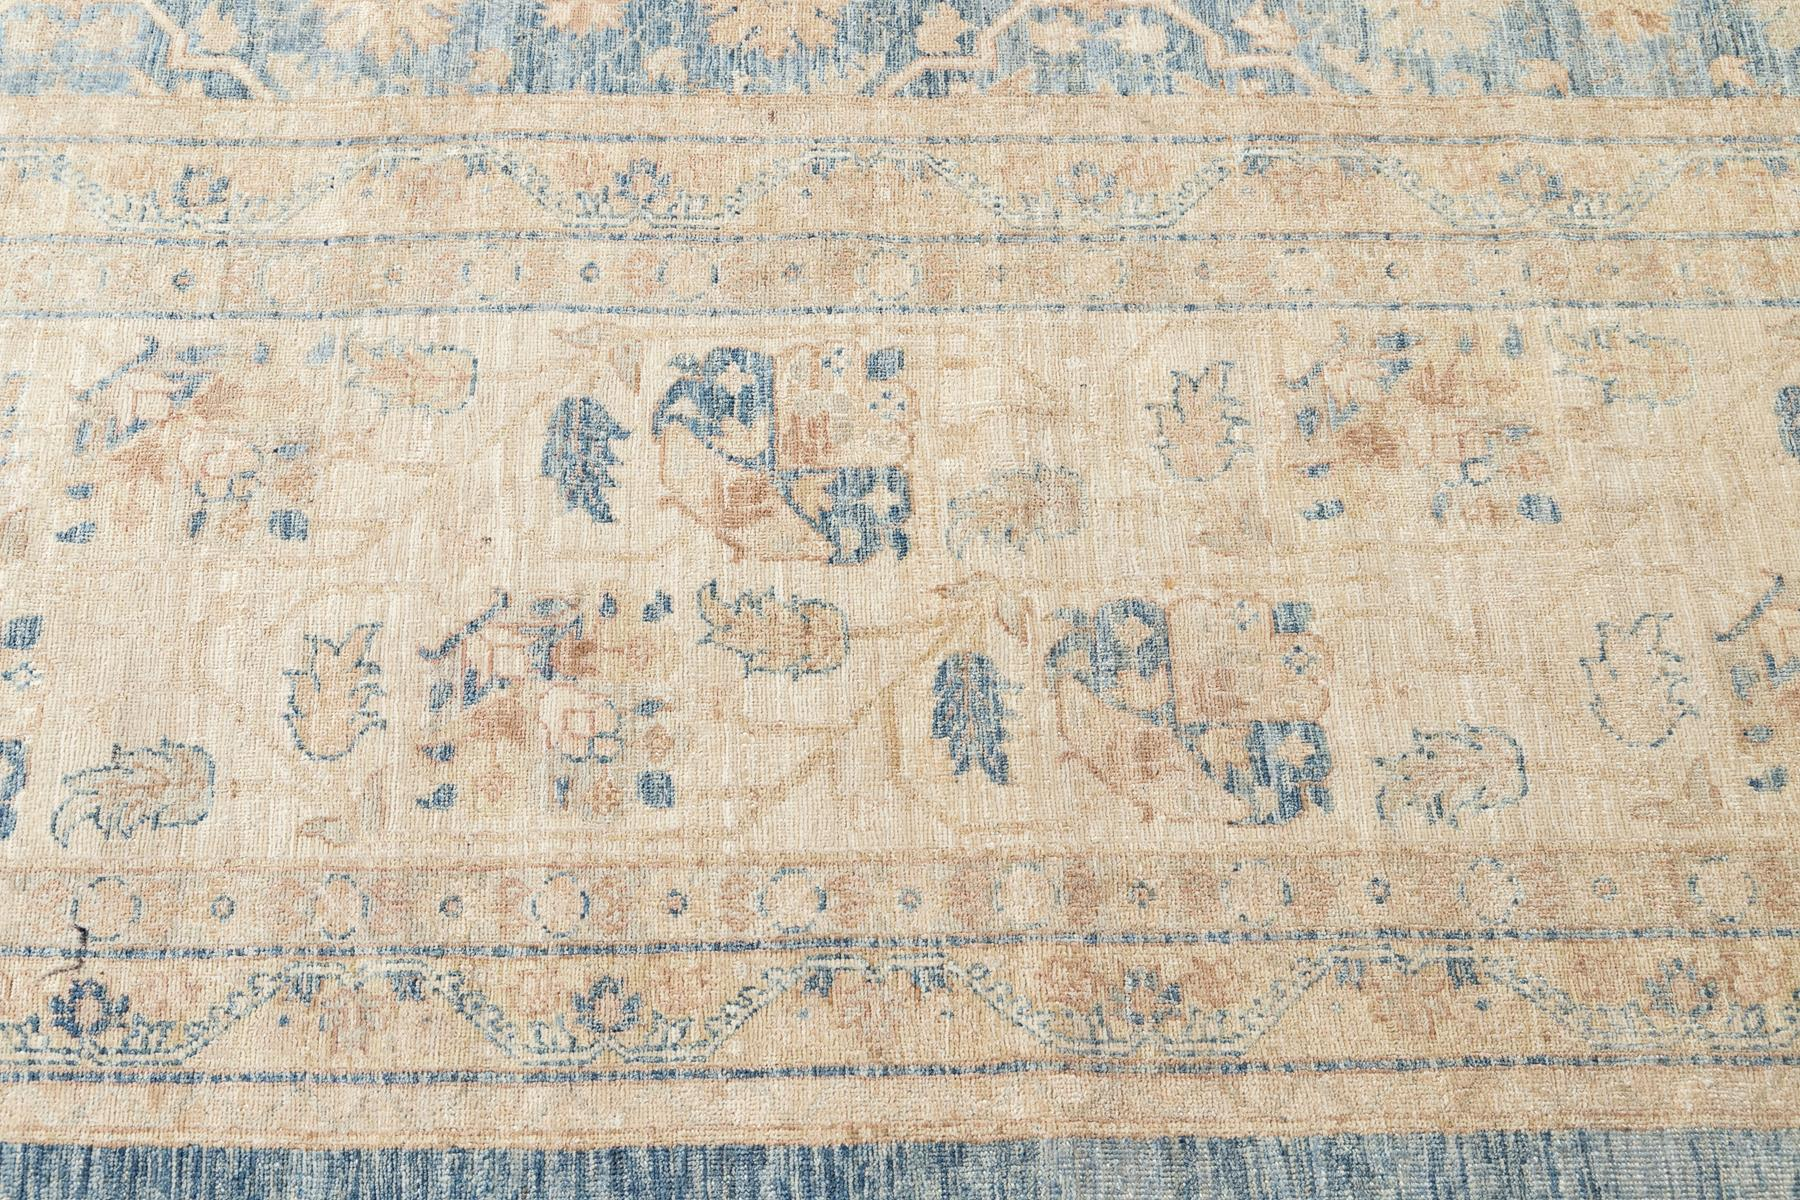 Contemporary Oversize Ivory and Pale Blue Tabriz-Style Wool Area Rug 18' x 24'